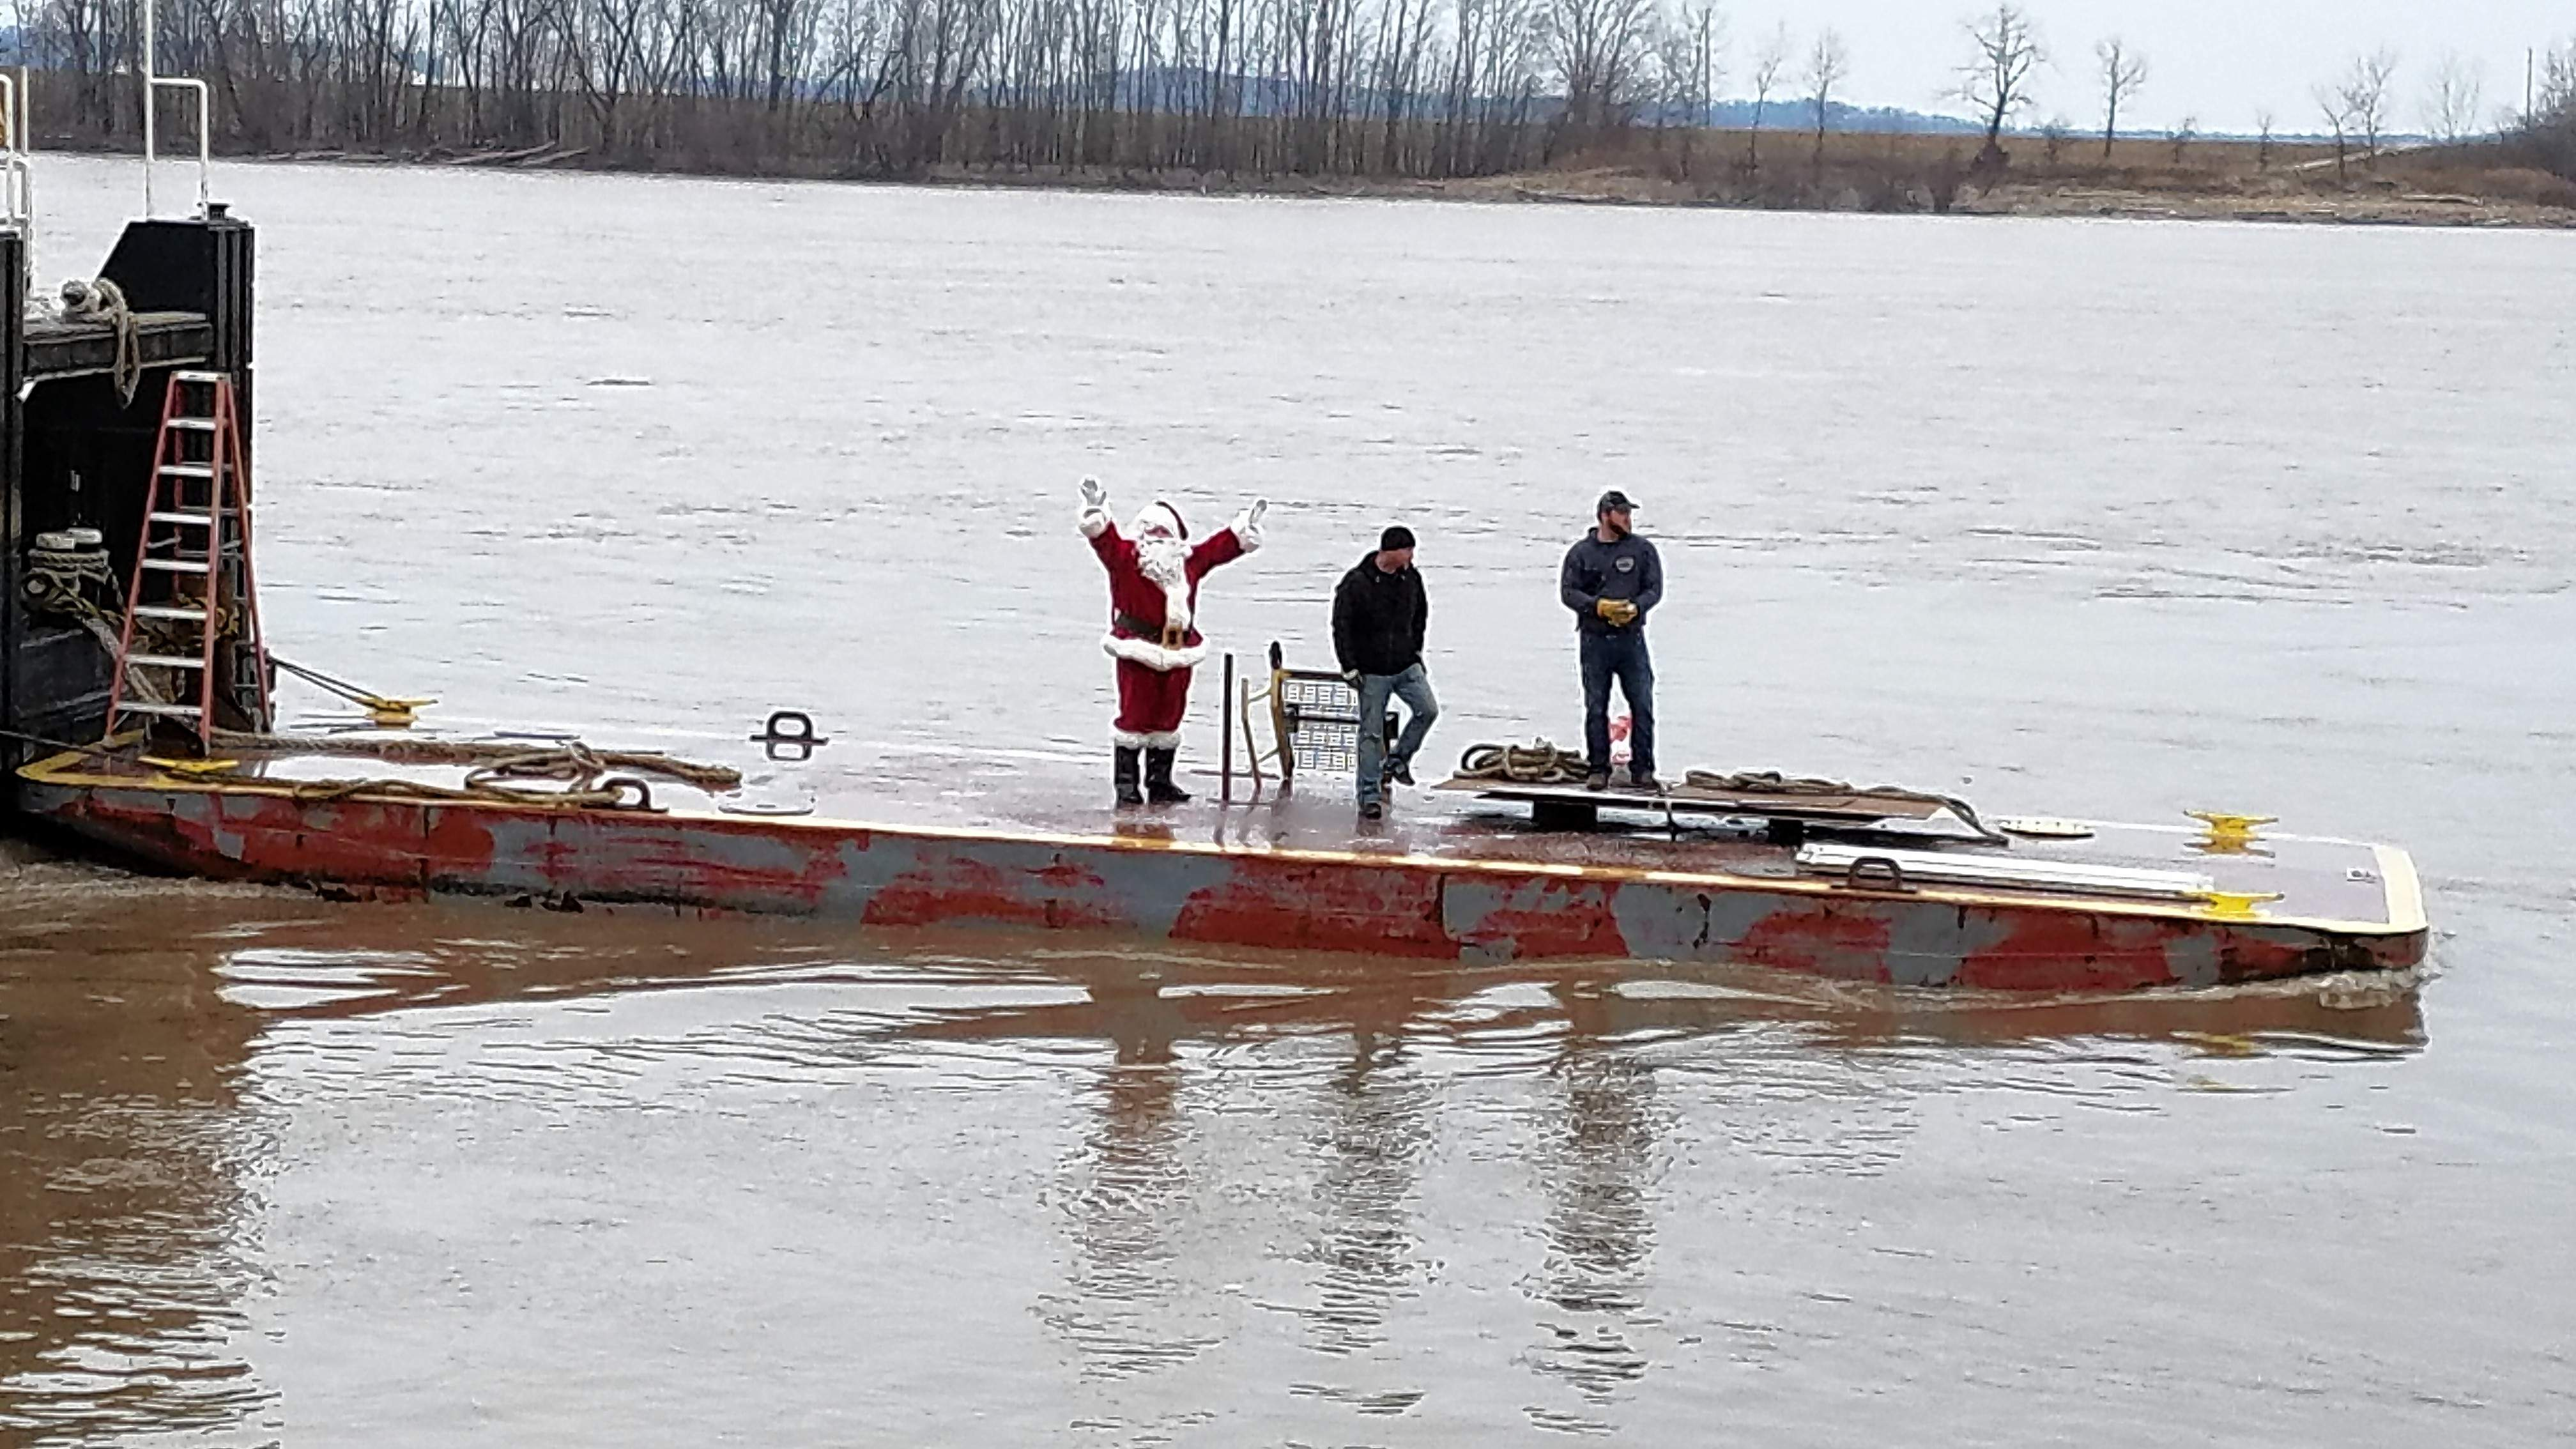 Santa makes a triumphant entrance to Chester aboard a barge, landing at the riverfront.